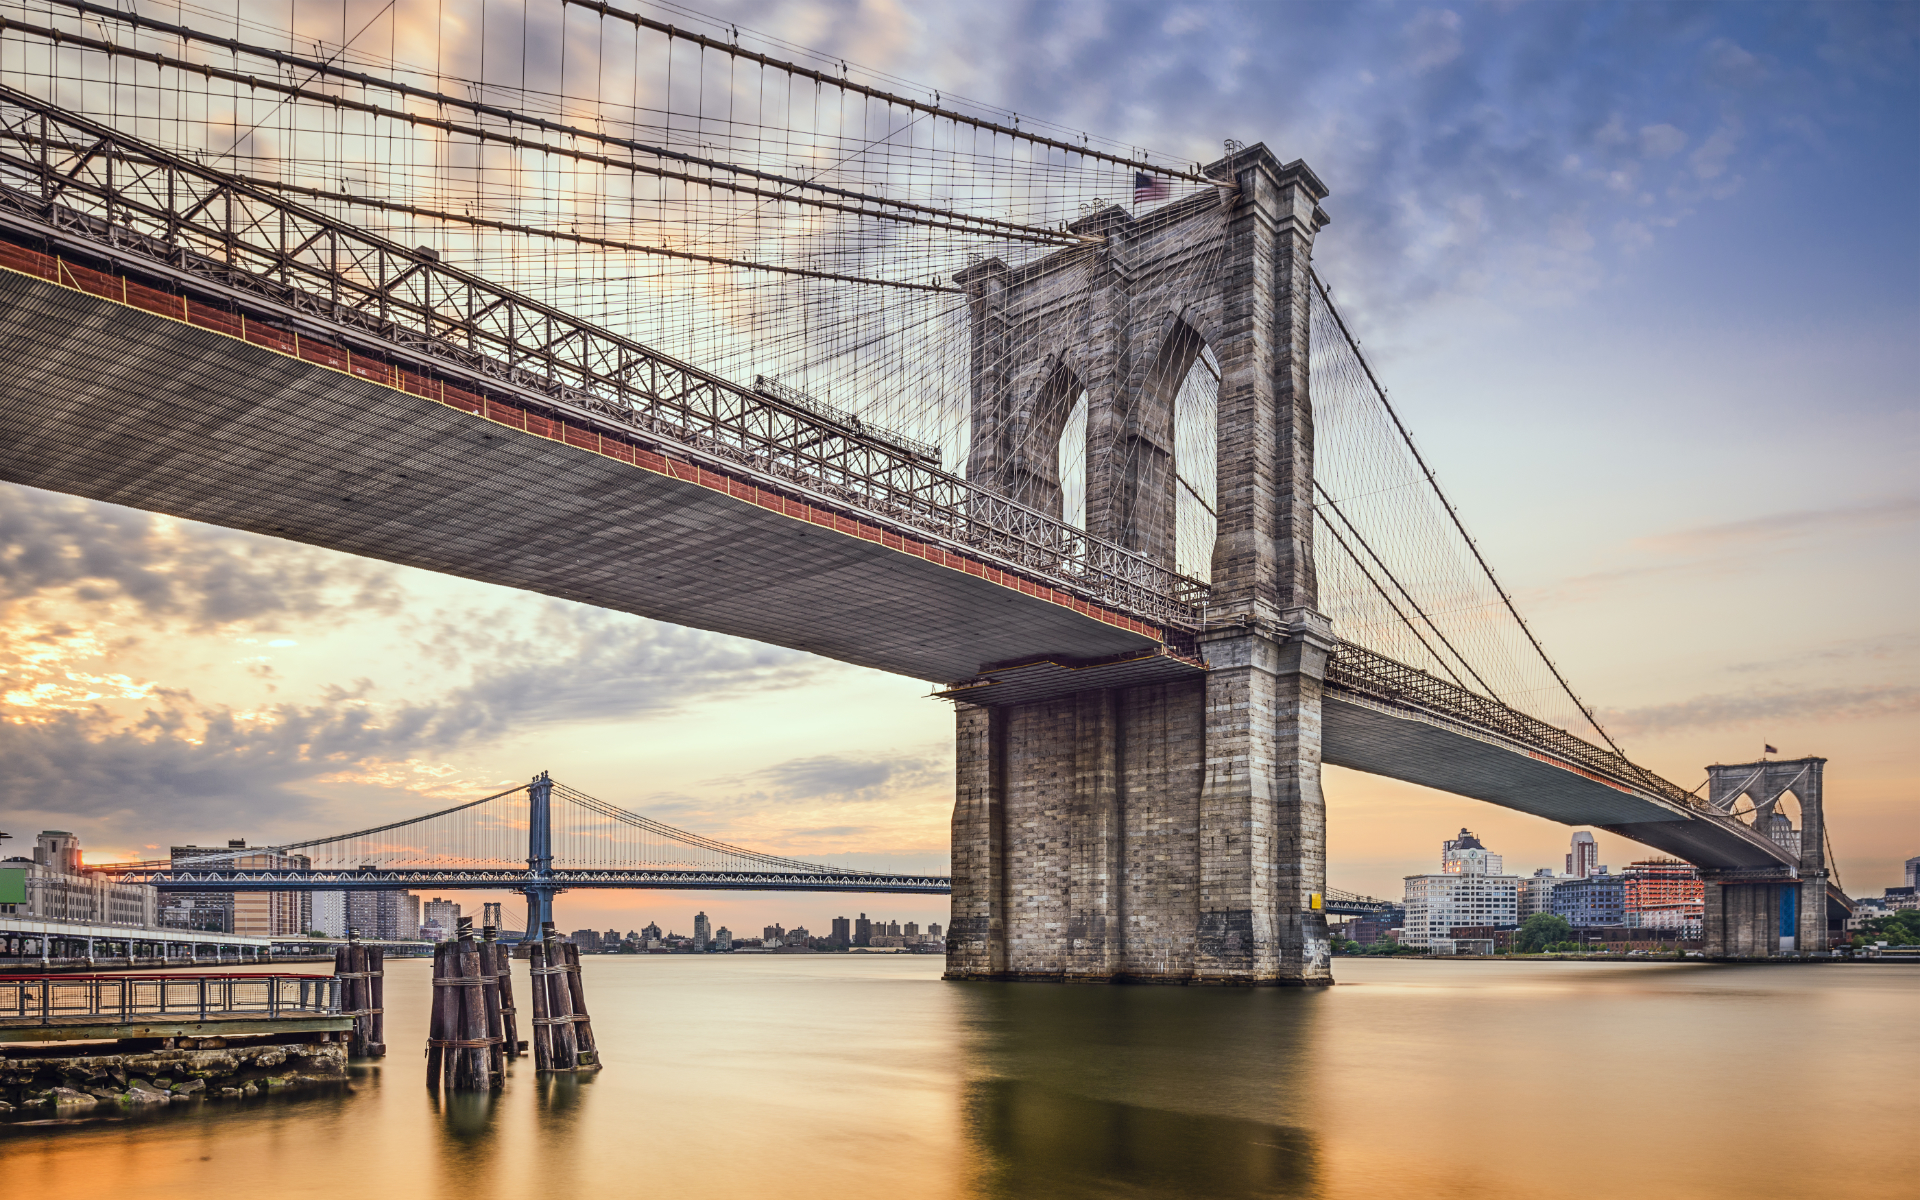 Brooklyn - Search our Brooklyn inventory to find a suitable home for you and your family. Our experienced agents are here to assist you with finding the area that suits you.